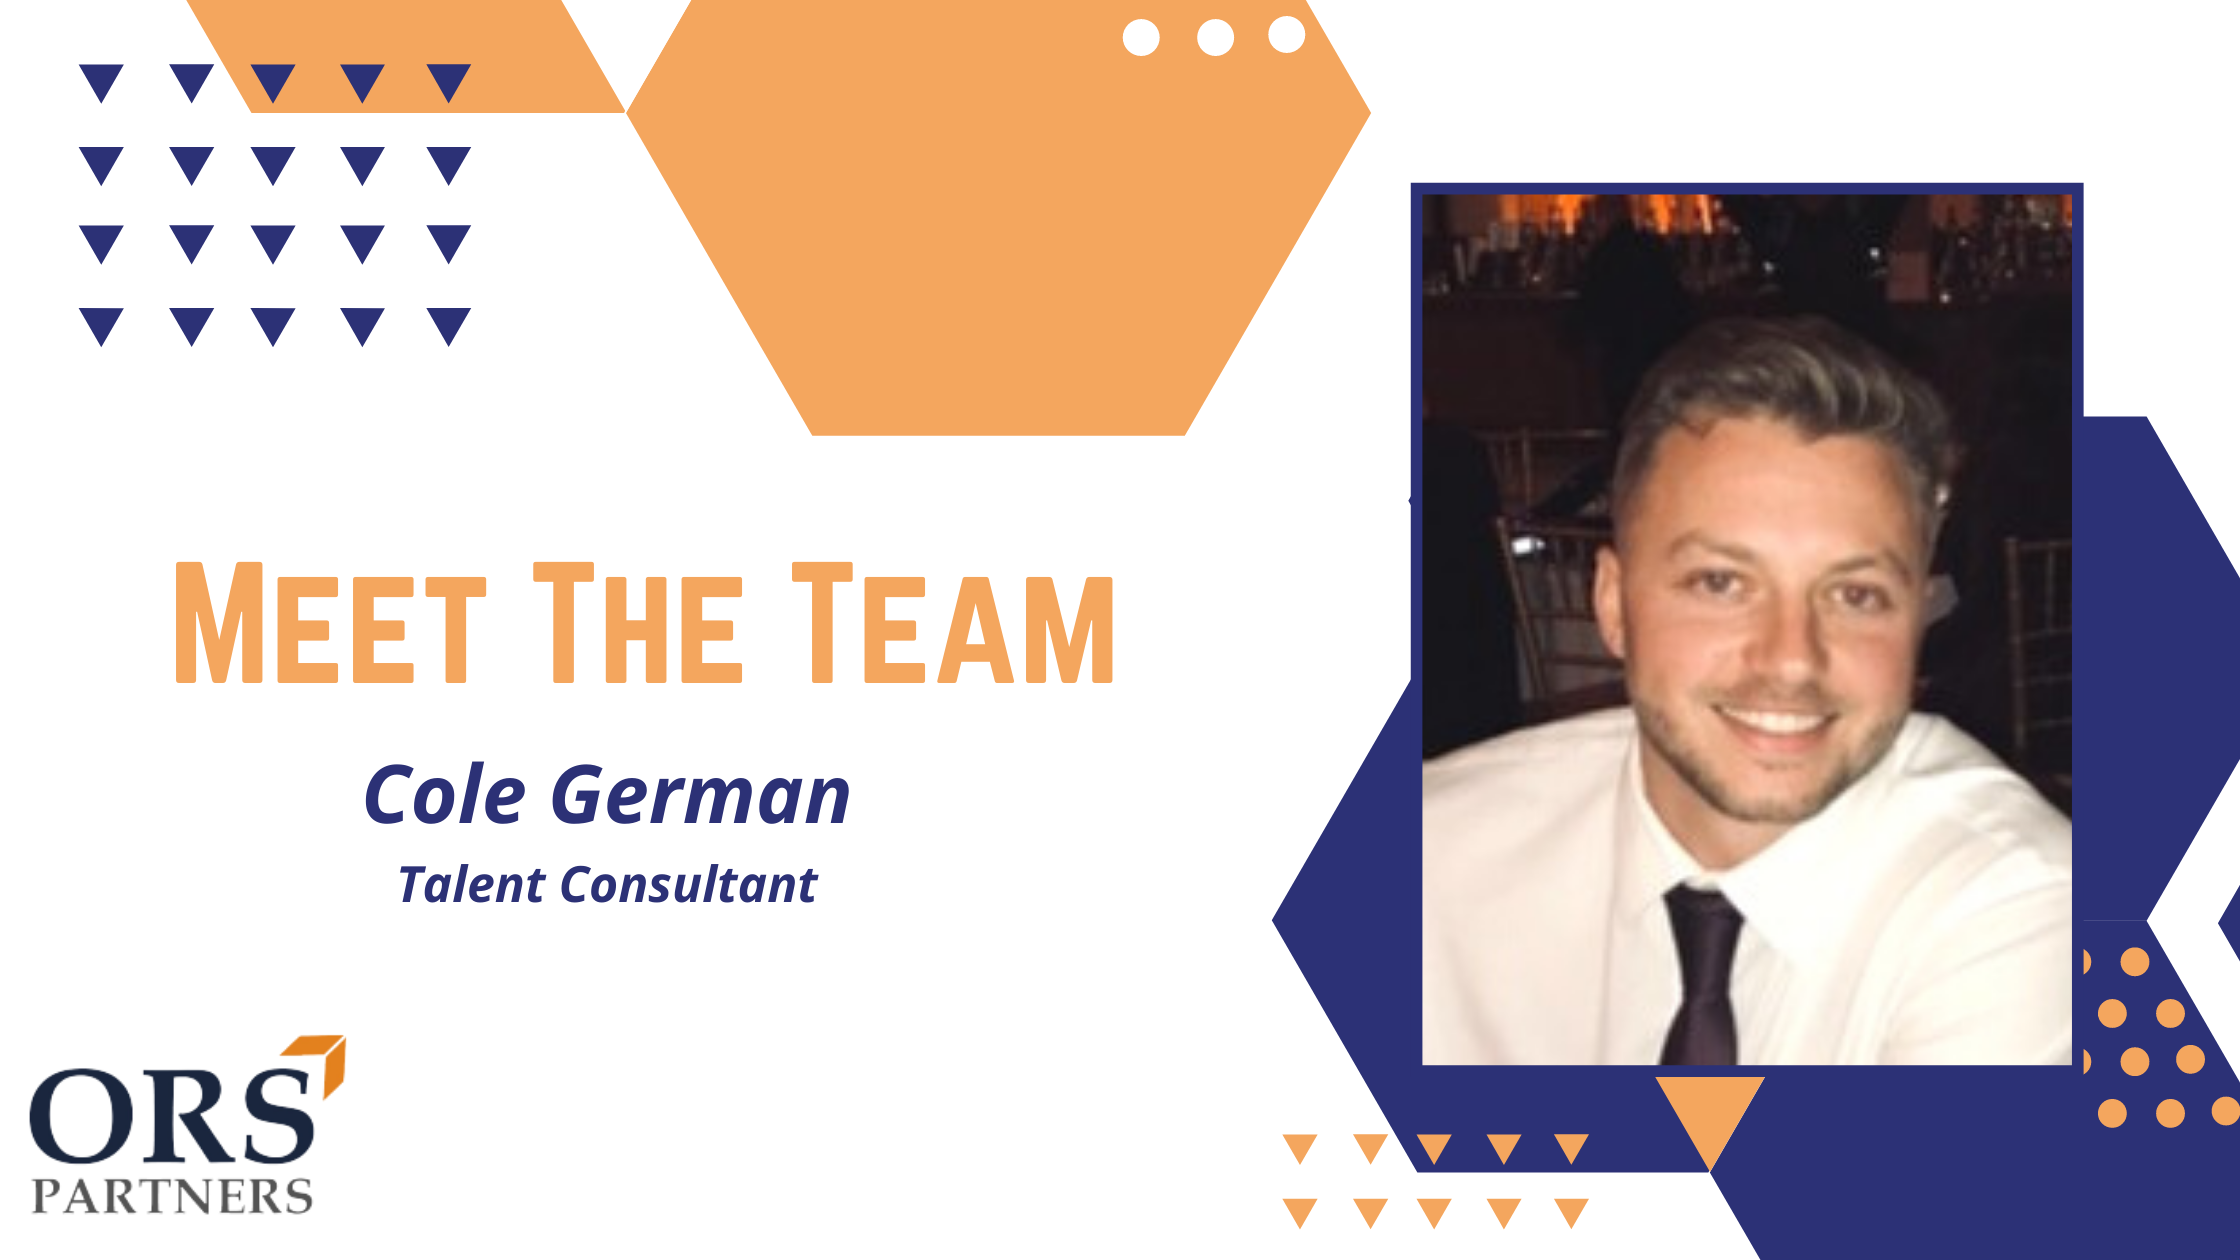 Meet the Team: Cole German